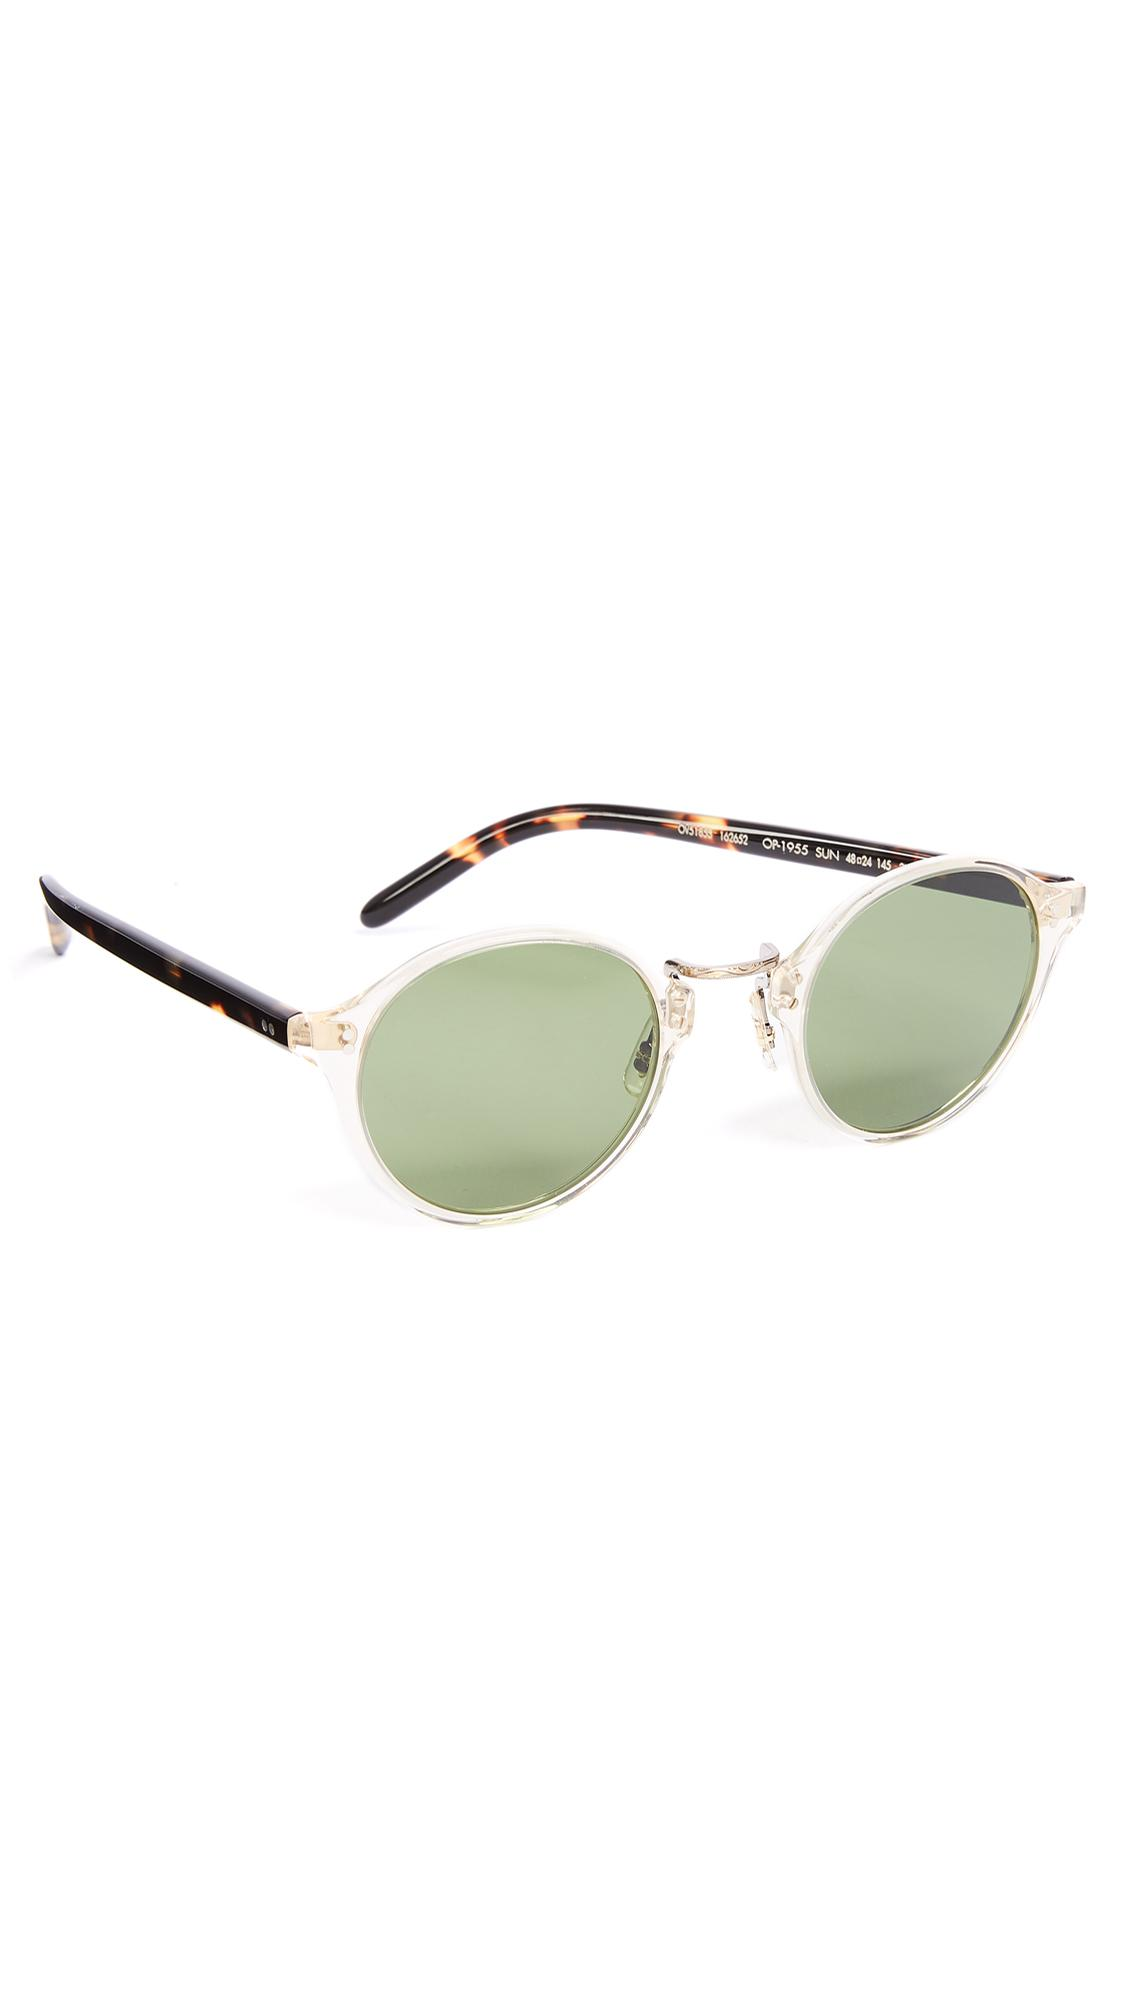 8ef57e1f15e Oliver Peoples Op 1955 Sunglasses in Green for Men - Lyst